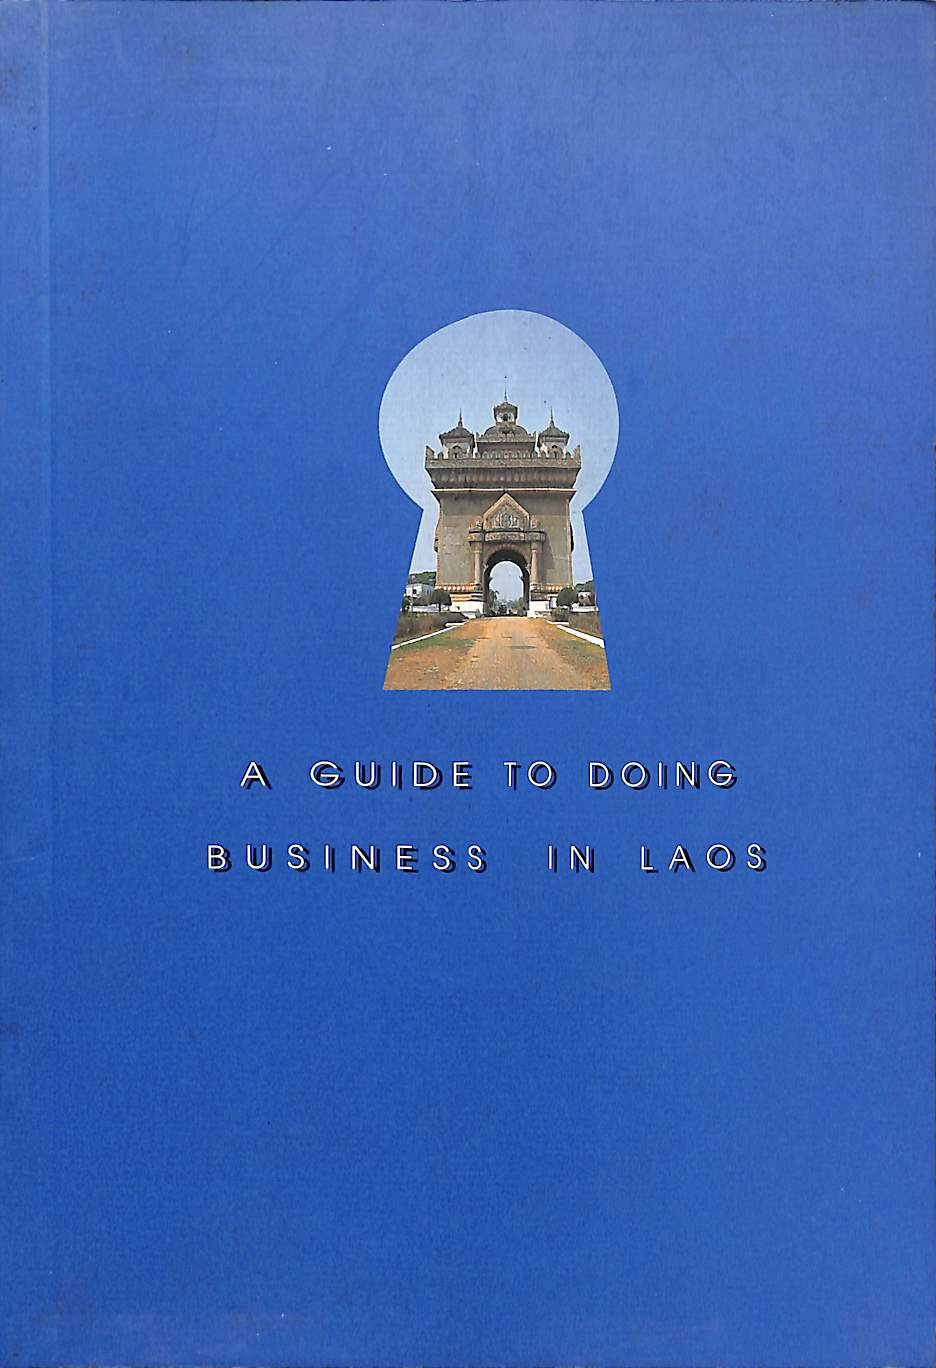 A Guide to doing business in Loas